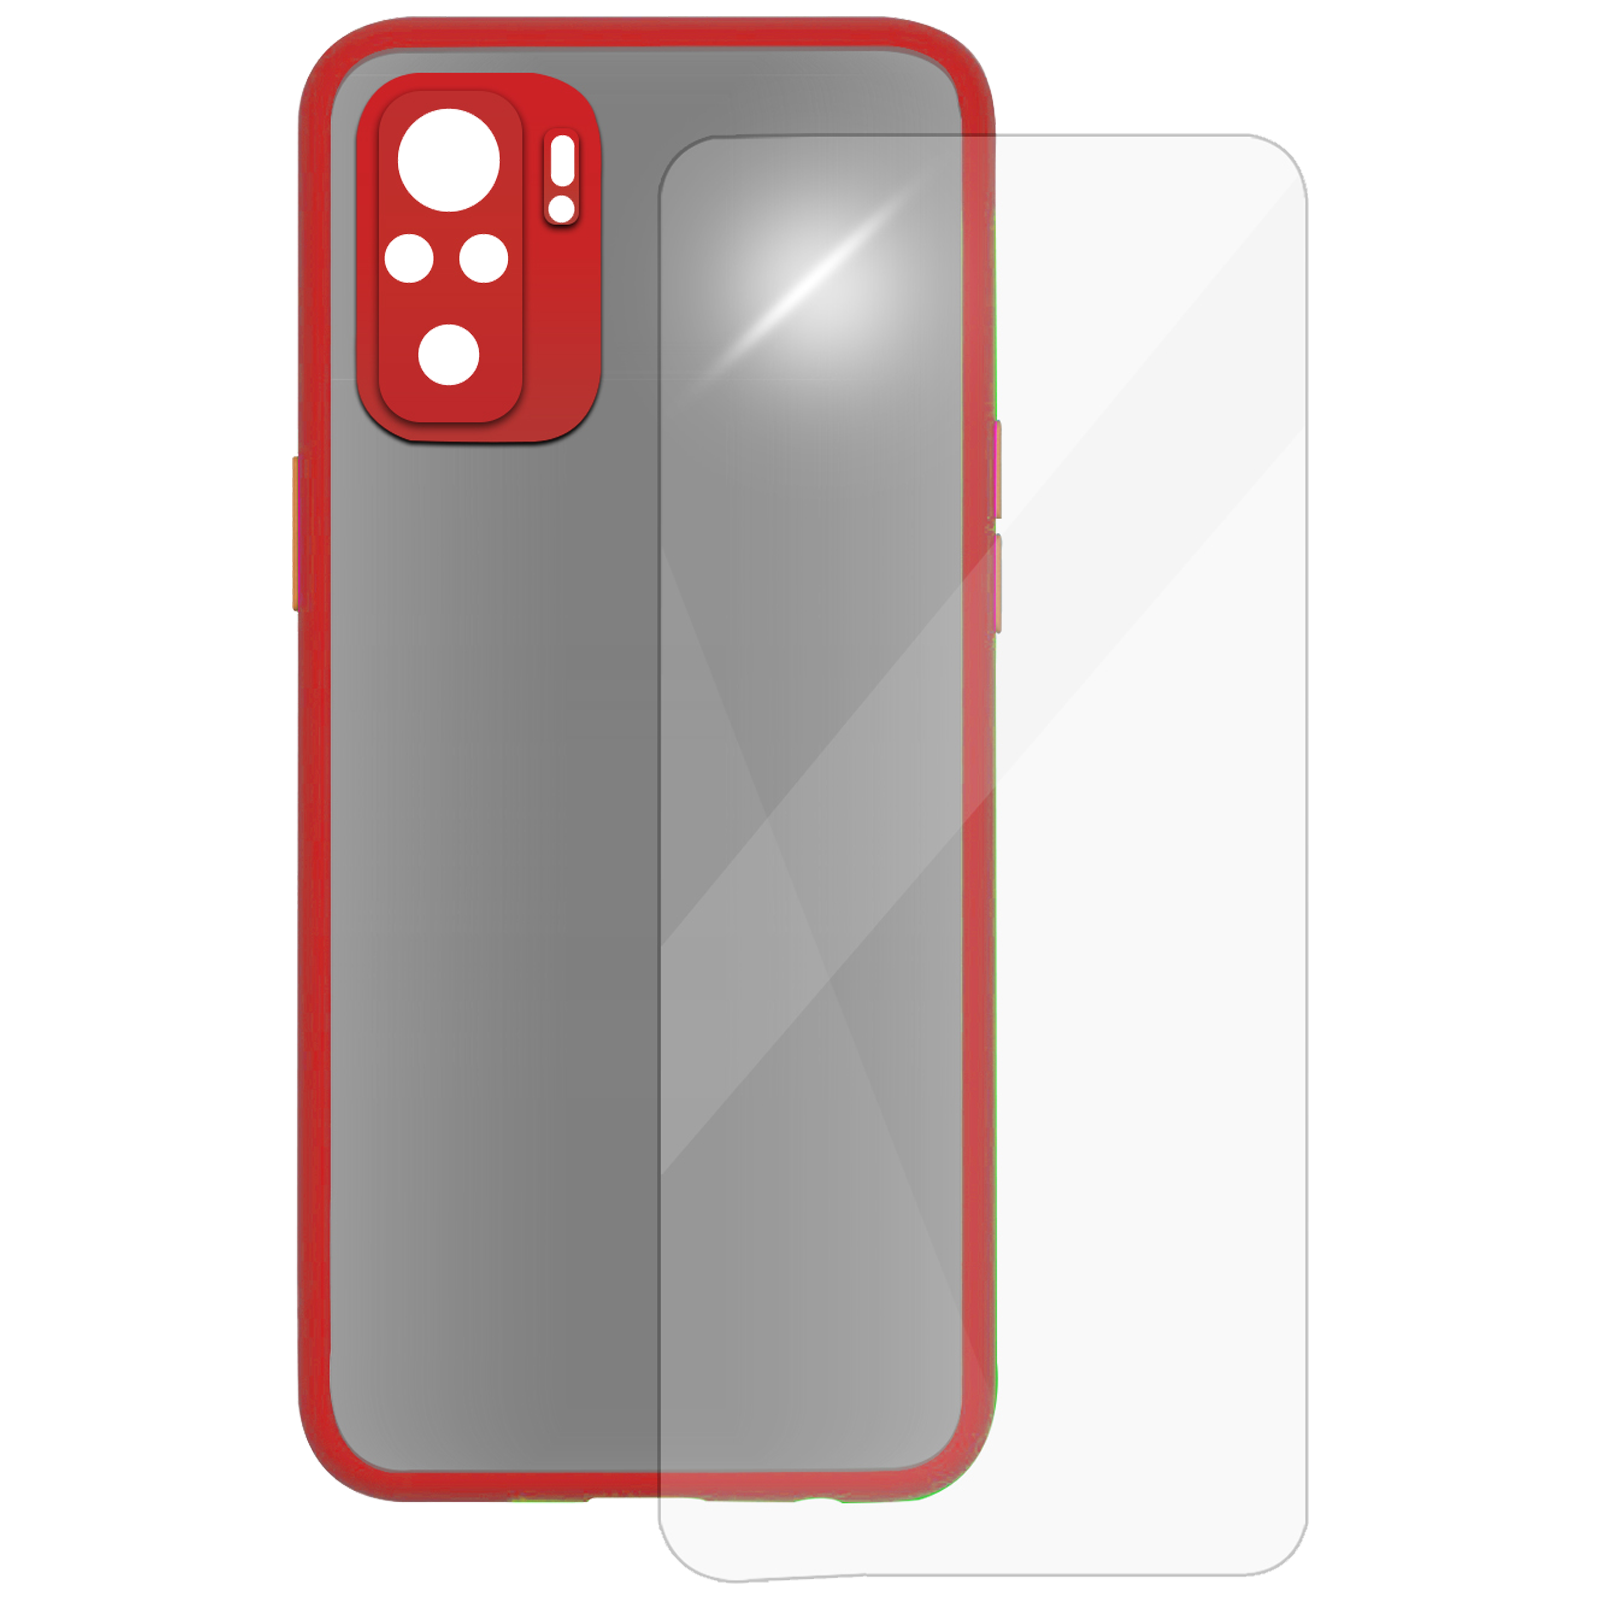 Arrow Camera Duplex Back Case and Screen Protector Bundle For Xiaomi Redmi Note 10 (Ultra Transparent Visibility, AR-1035, Red)_1